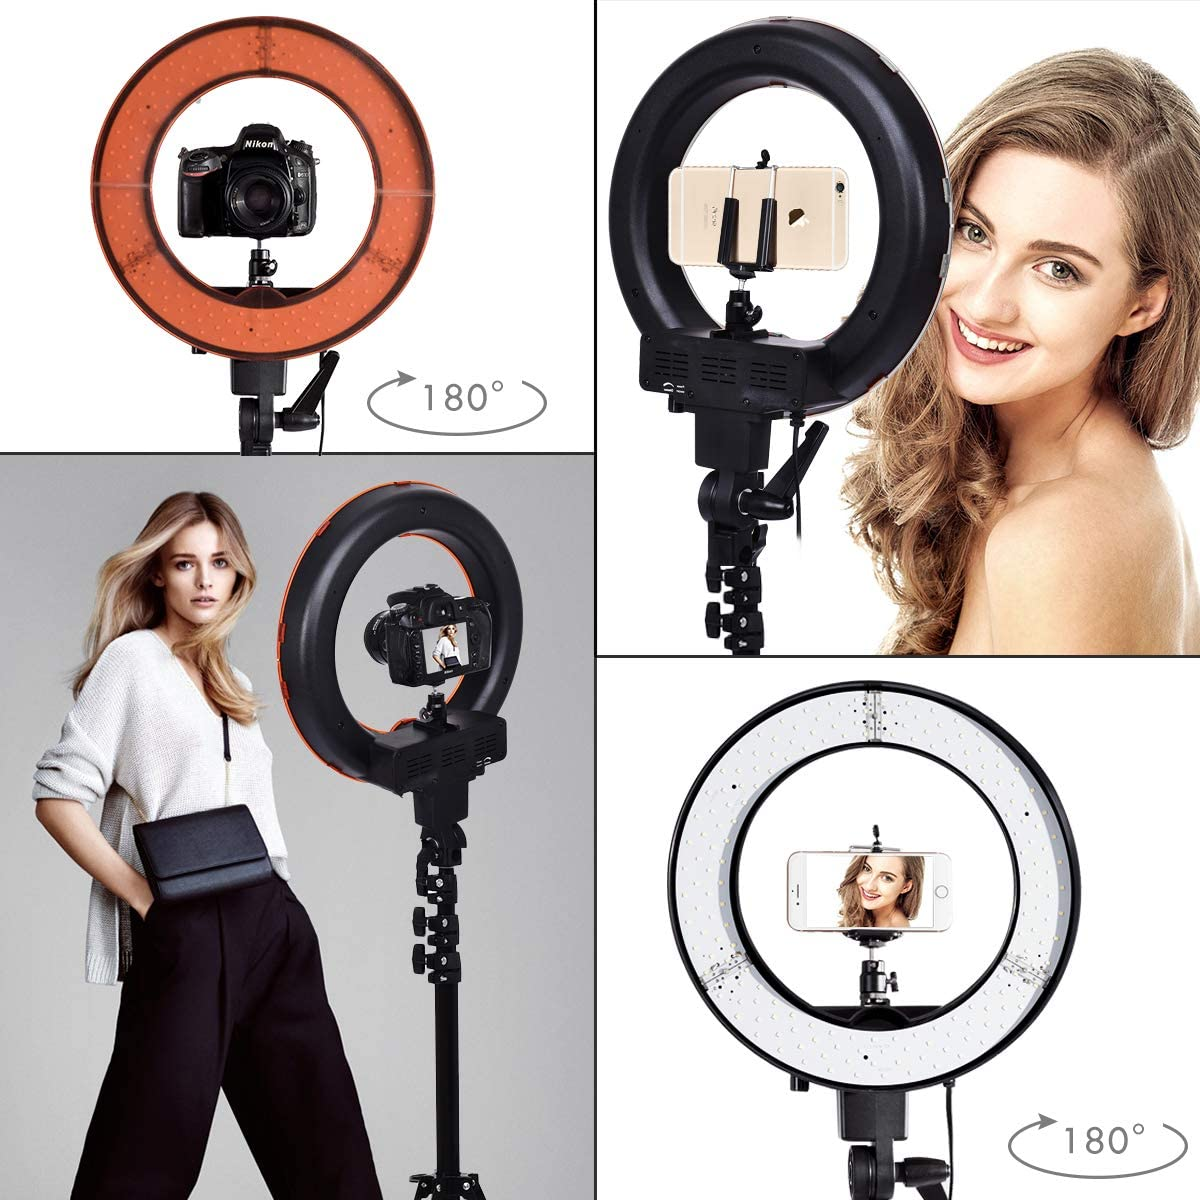 Safstar 12 LED Ring Light Flash Video Light 35W 5600K Dimmable with Stand Plastic Color Filter Set Carrying Case for Smartphone Vine Self-Portrait Video Shooting YouTube